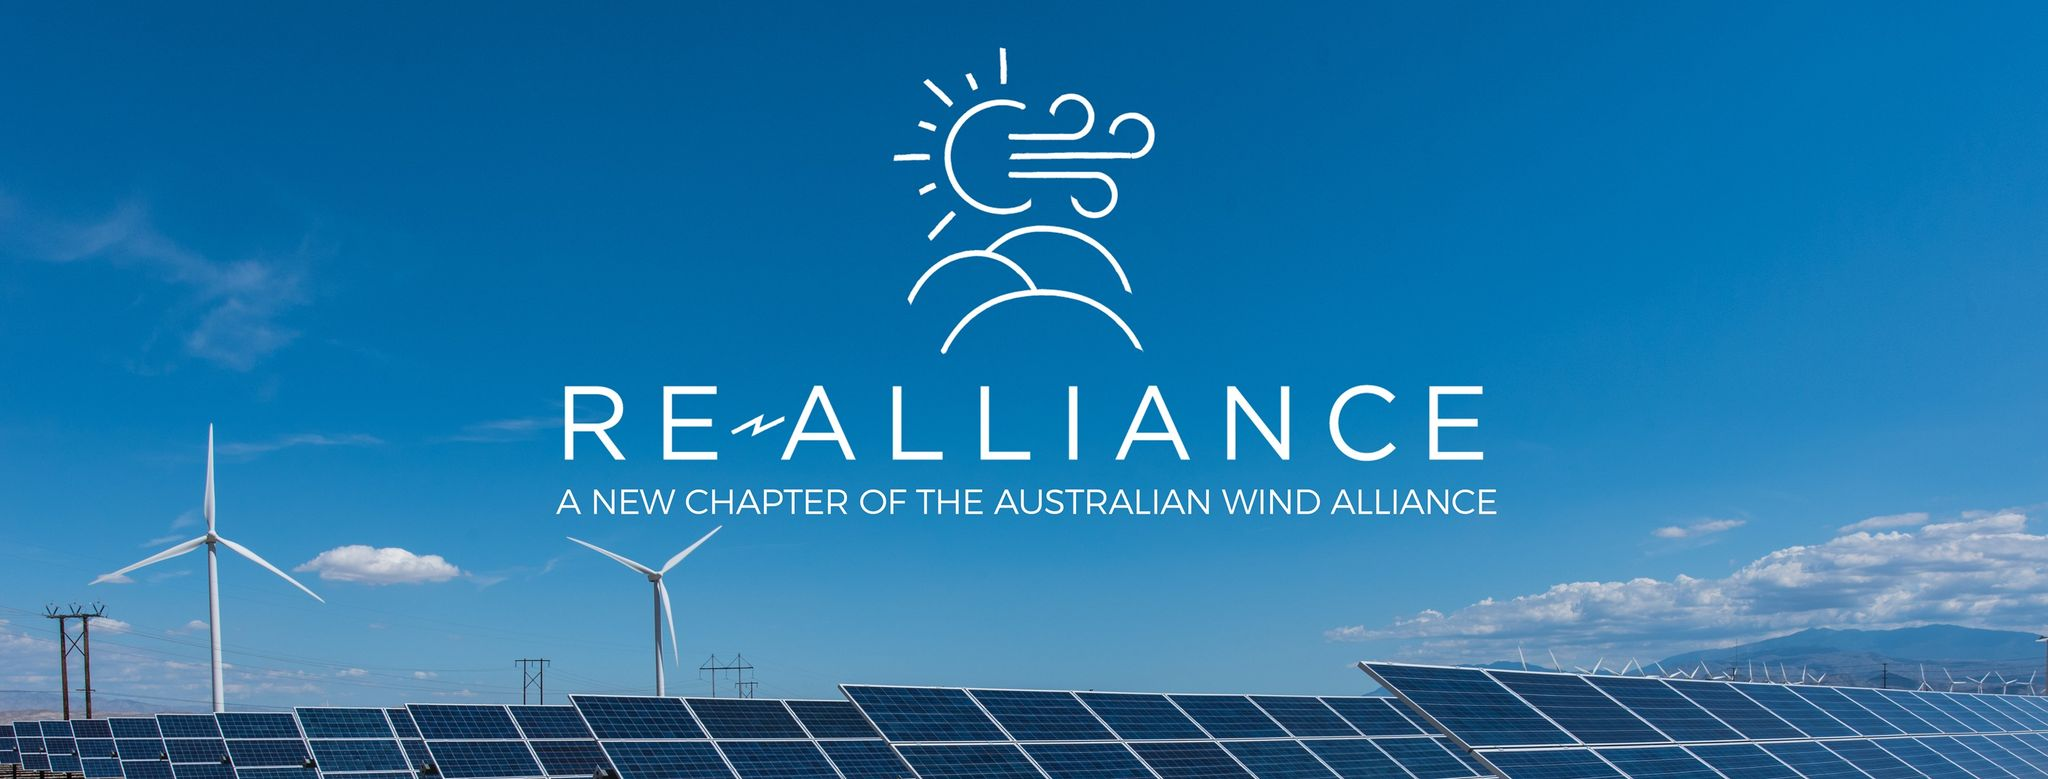 RE-Alliance - connecting people and power